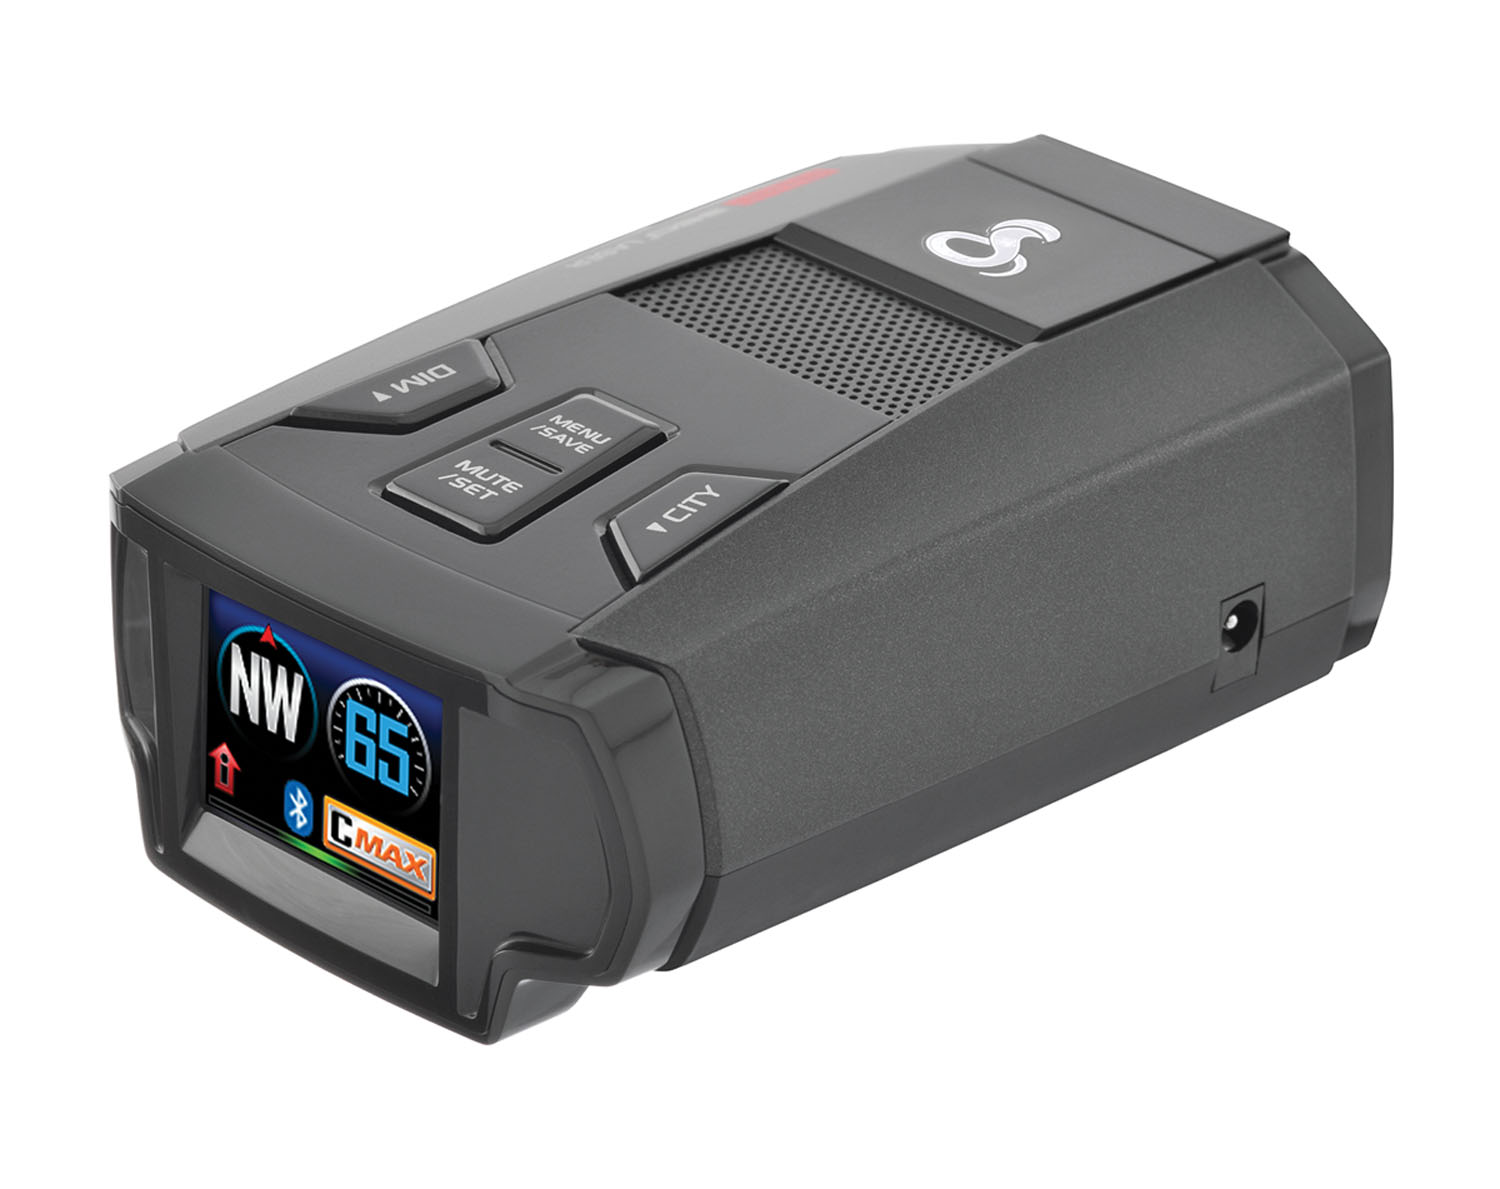 "COBRA - ULTRA-HIGH PERFORMANCE RADAR/LASER DETECTOR WITH BLUETOOTH iRADAR COMMUNITY-BASED DETECTION, 1.25"" FULL COLOR LED DISPLA"